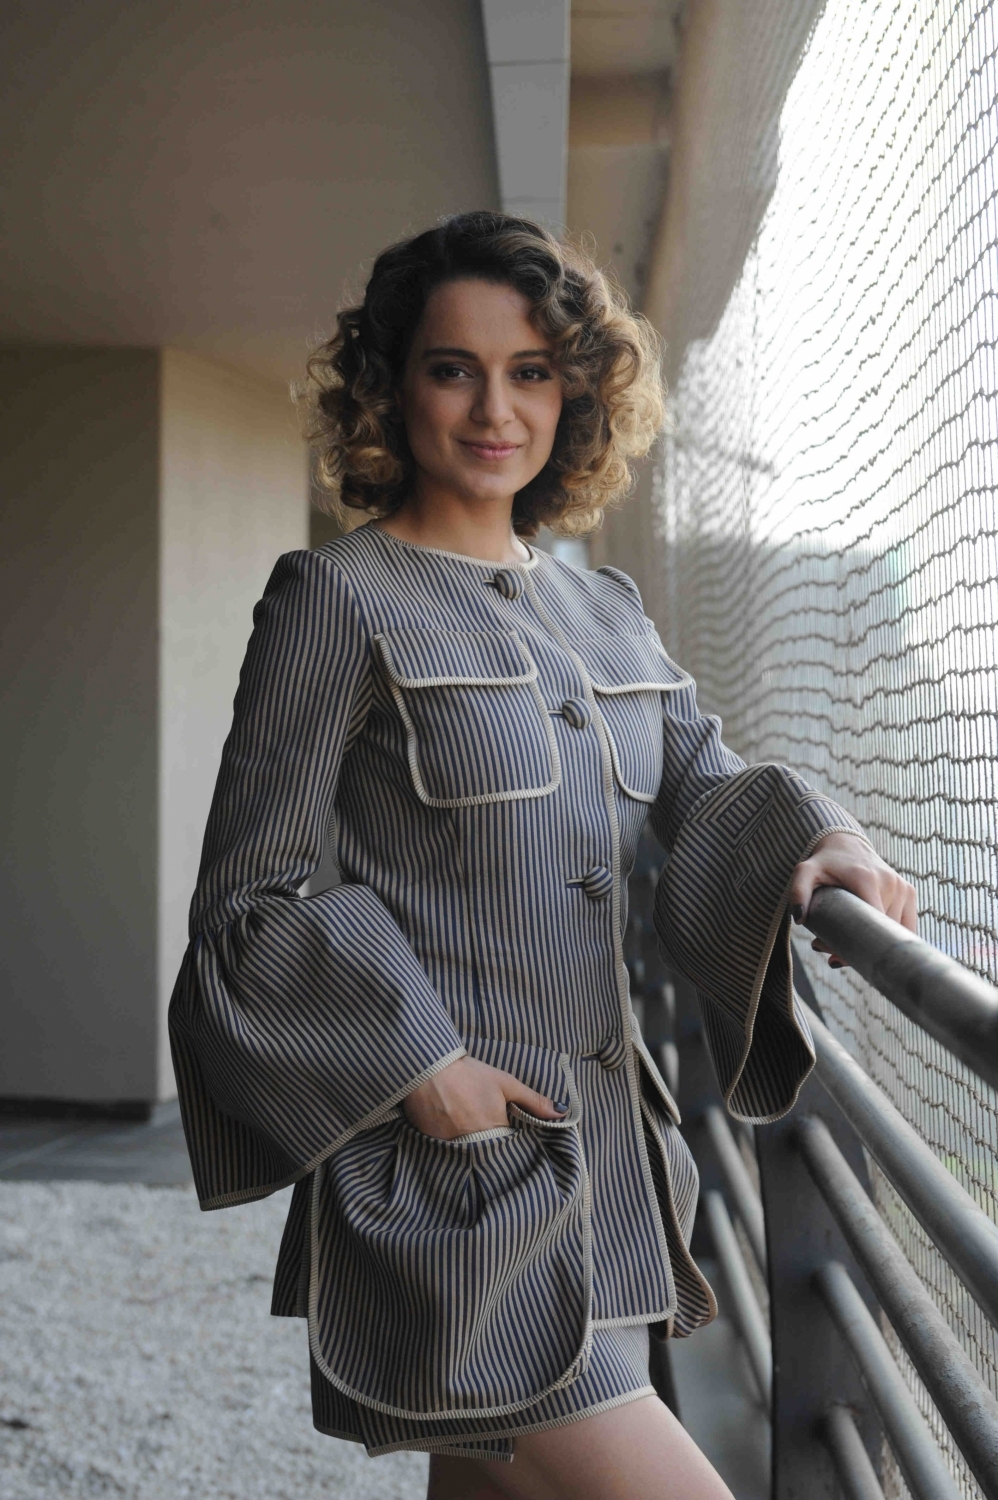 Mumbai: Actress Kangana Ranaut during the media interaction of film Rangoon in Mumbai on Jan 24, 2017 (Photo: IANS)